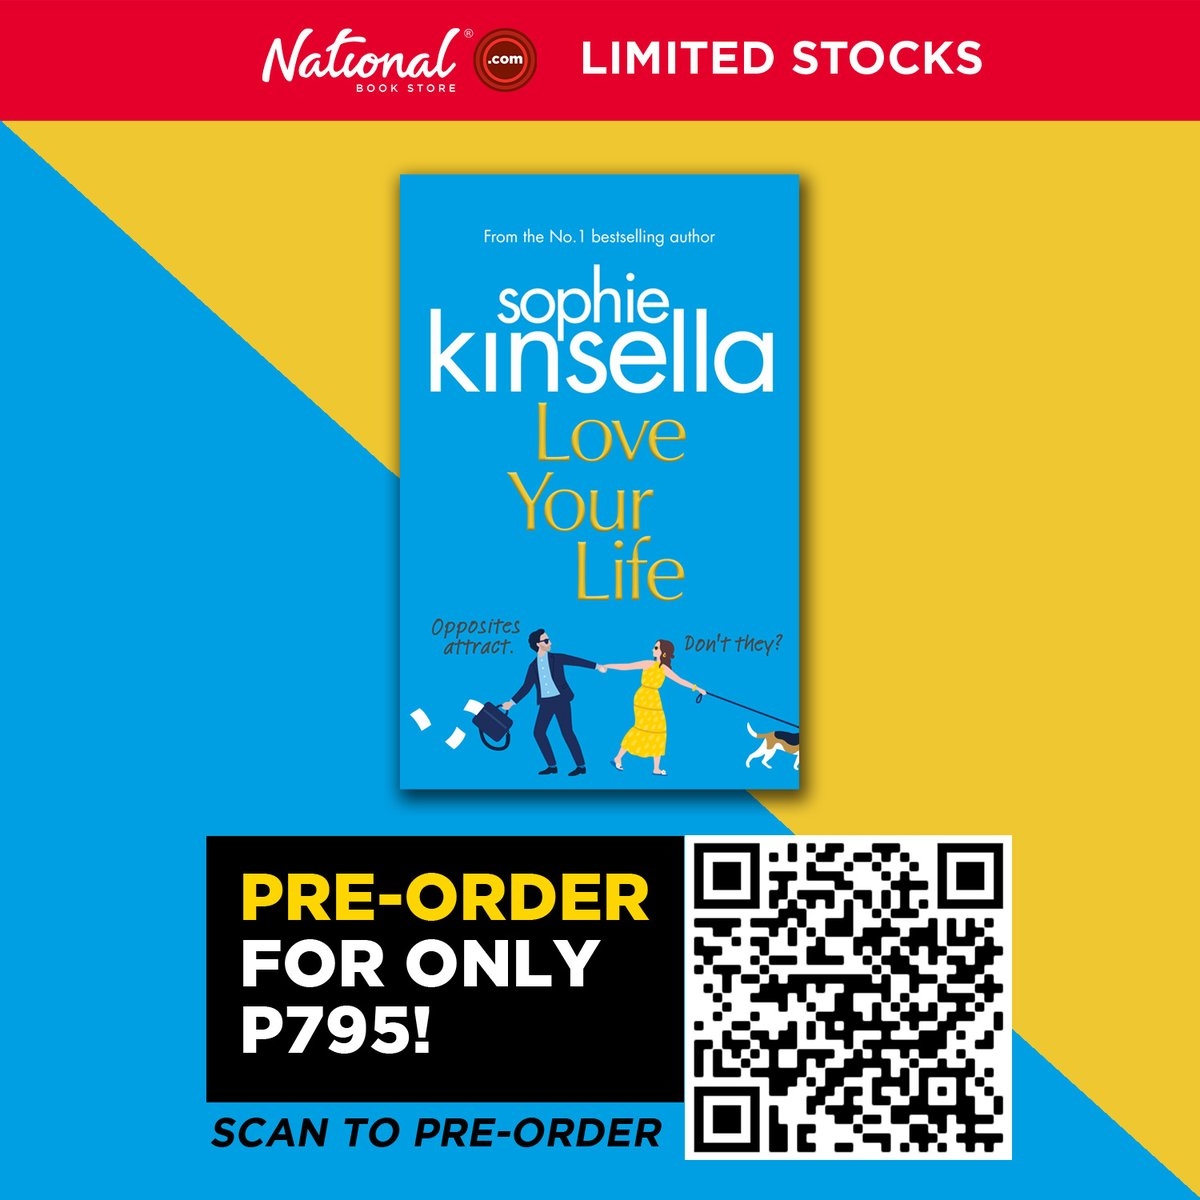 Pre-order Love Your Life by Sophie Kinsella for P795.  Just scan the QR code or visit this link: . #LoveYourLife #SophieKinsella #NBSNewReads #NBSbookstagram #NBSeveryday